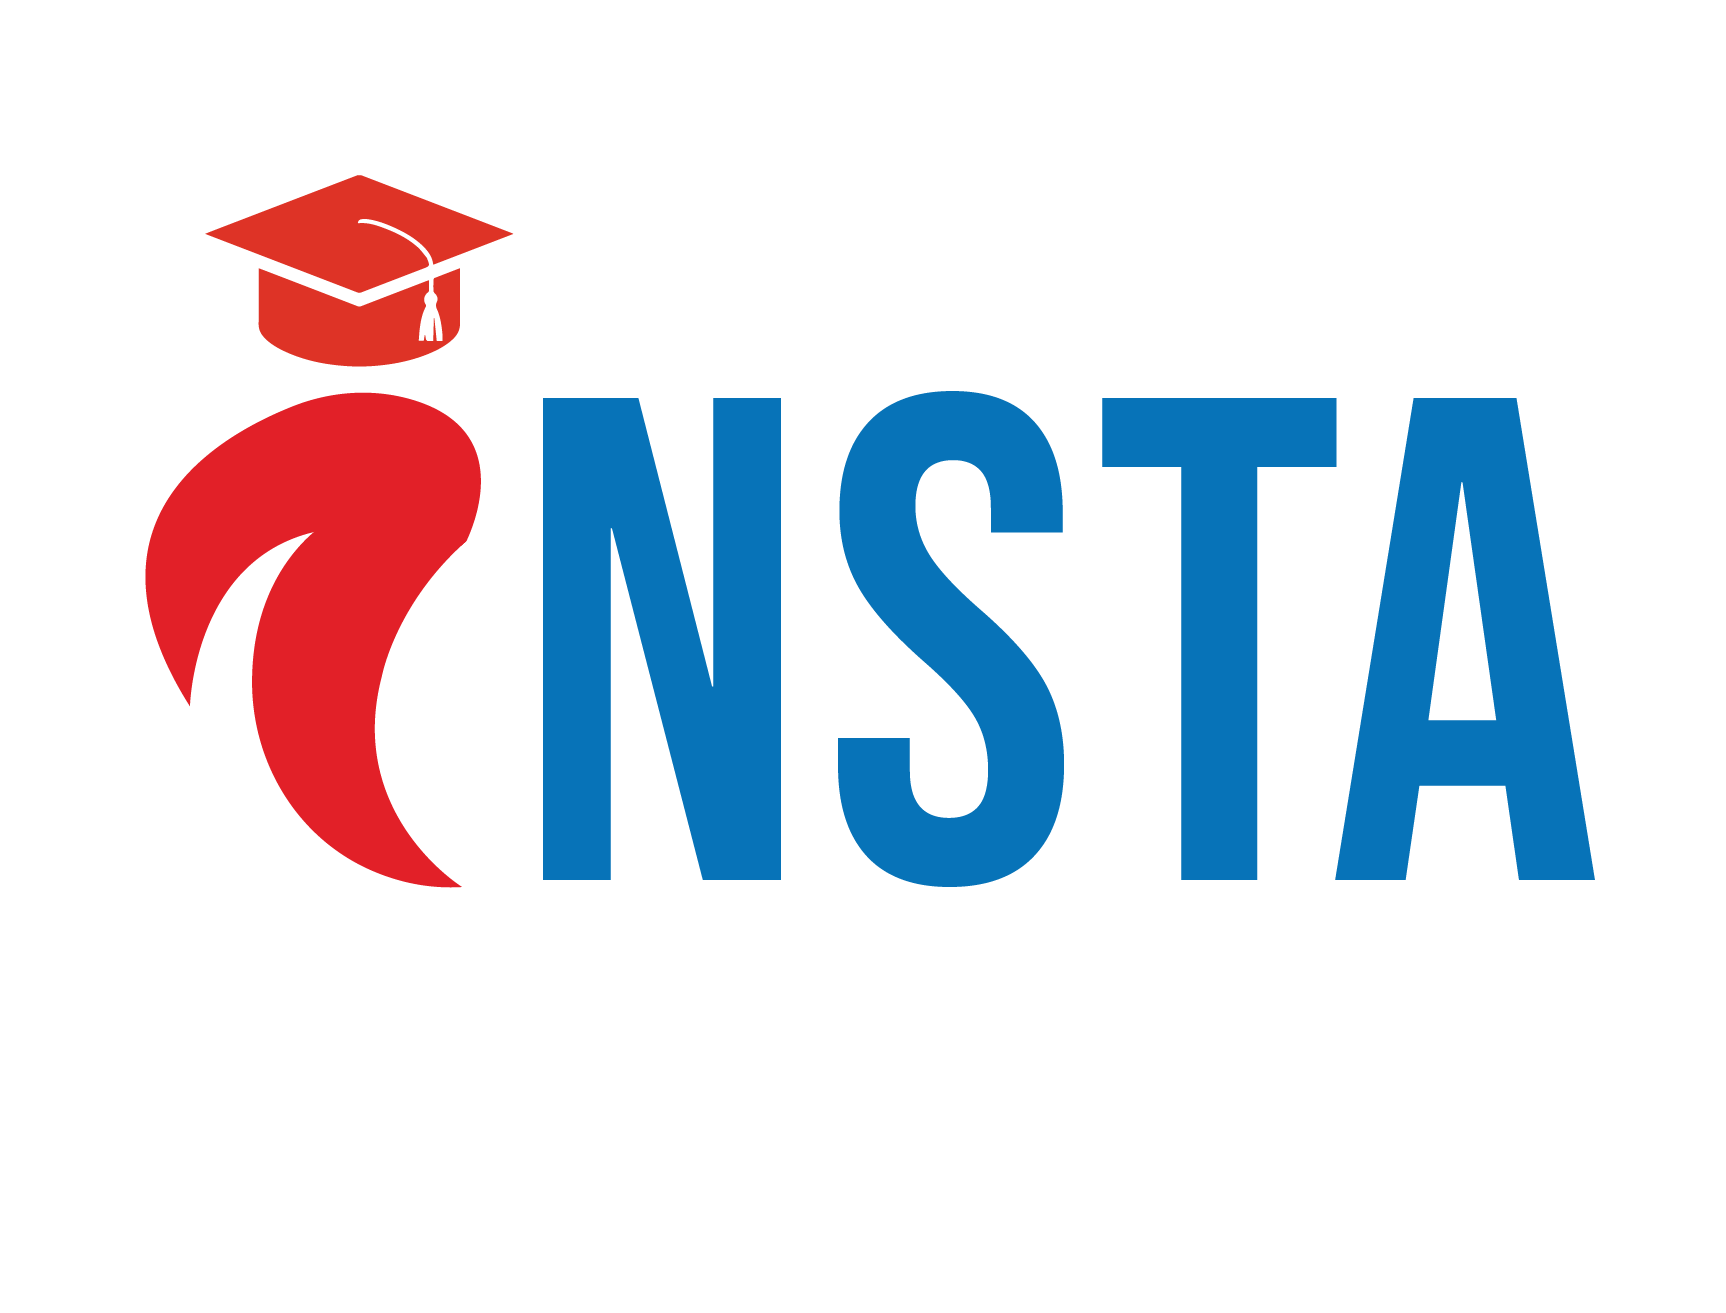 Insta Education and Visa Services